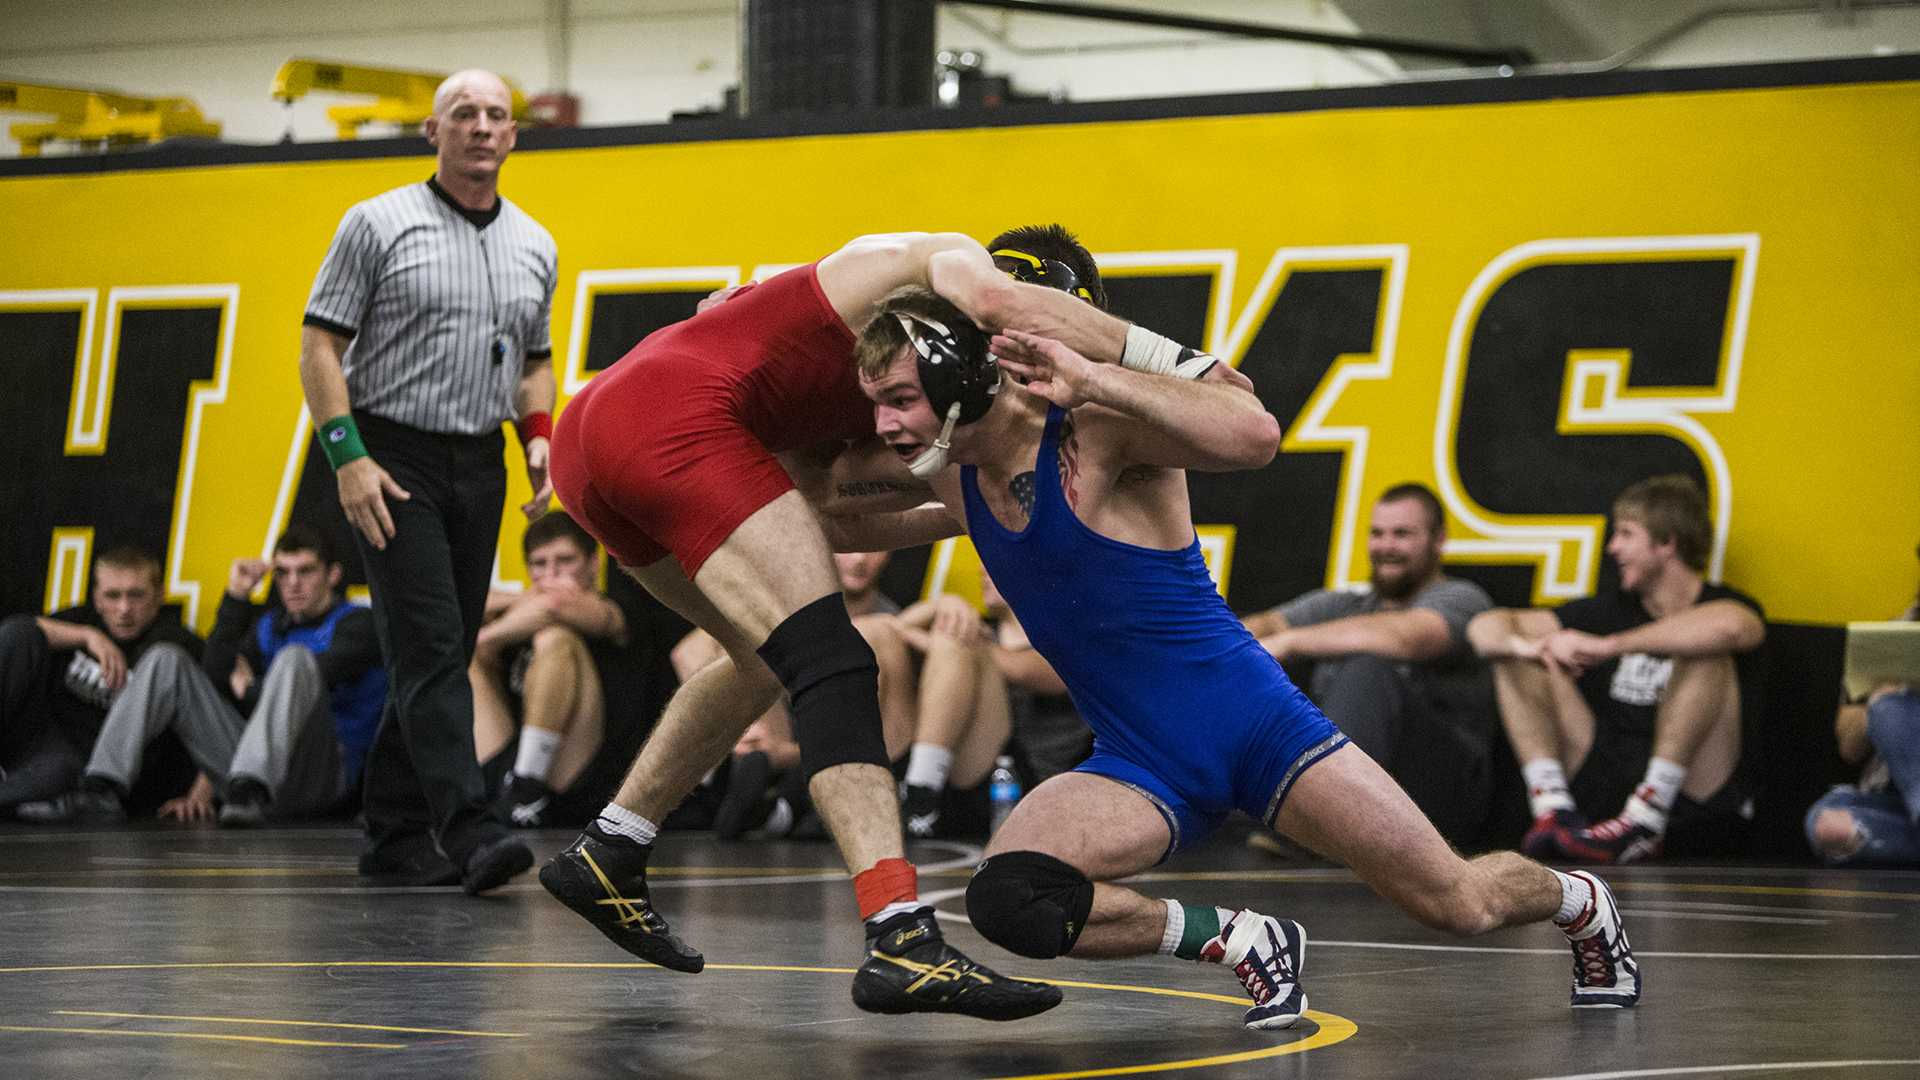 Brandon Sorenson and Stephen Alvarez compete in the 149 weight class during the Wrestle-Off at the Dan Gable Wrestling Complex inside Carver-Hawkeye Arena on Friday, Nov. 3, 2017. Sorenson went on to beat Alvarez. (Ben Smith/The Daily Iowan)